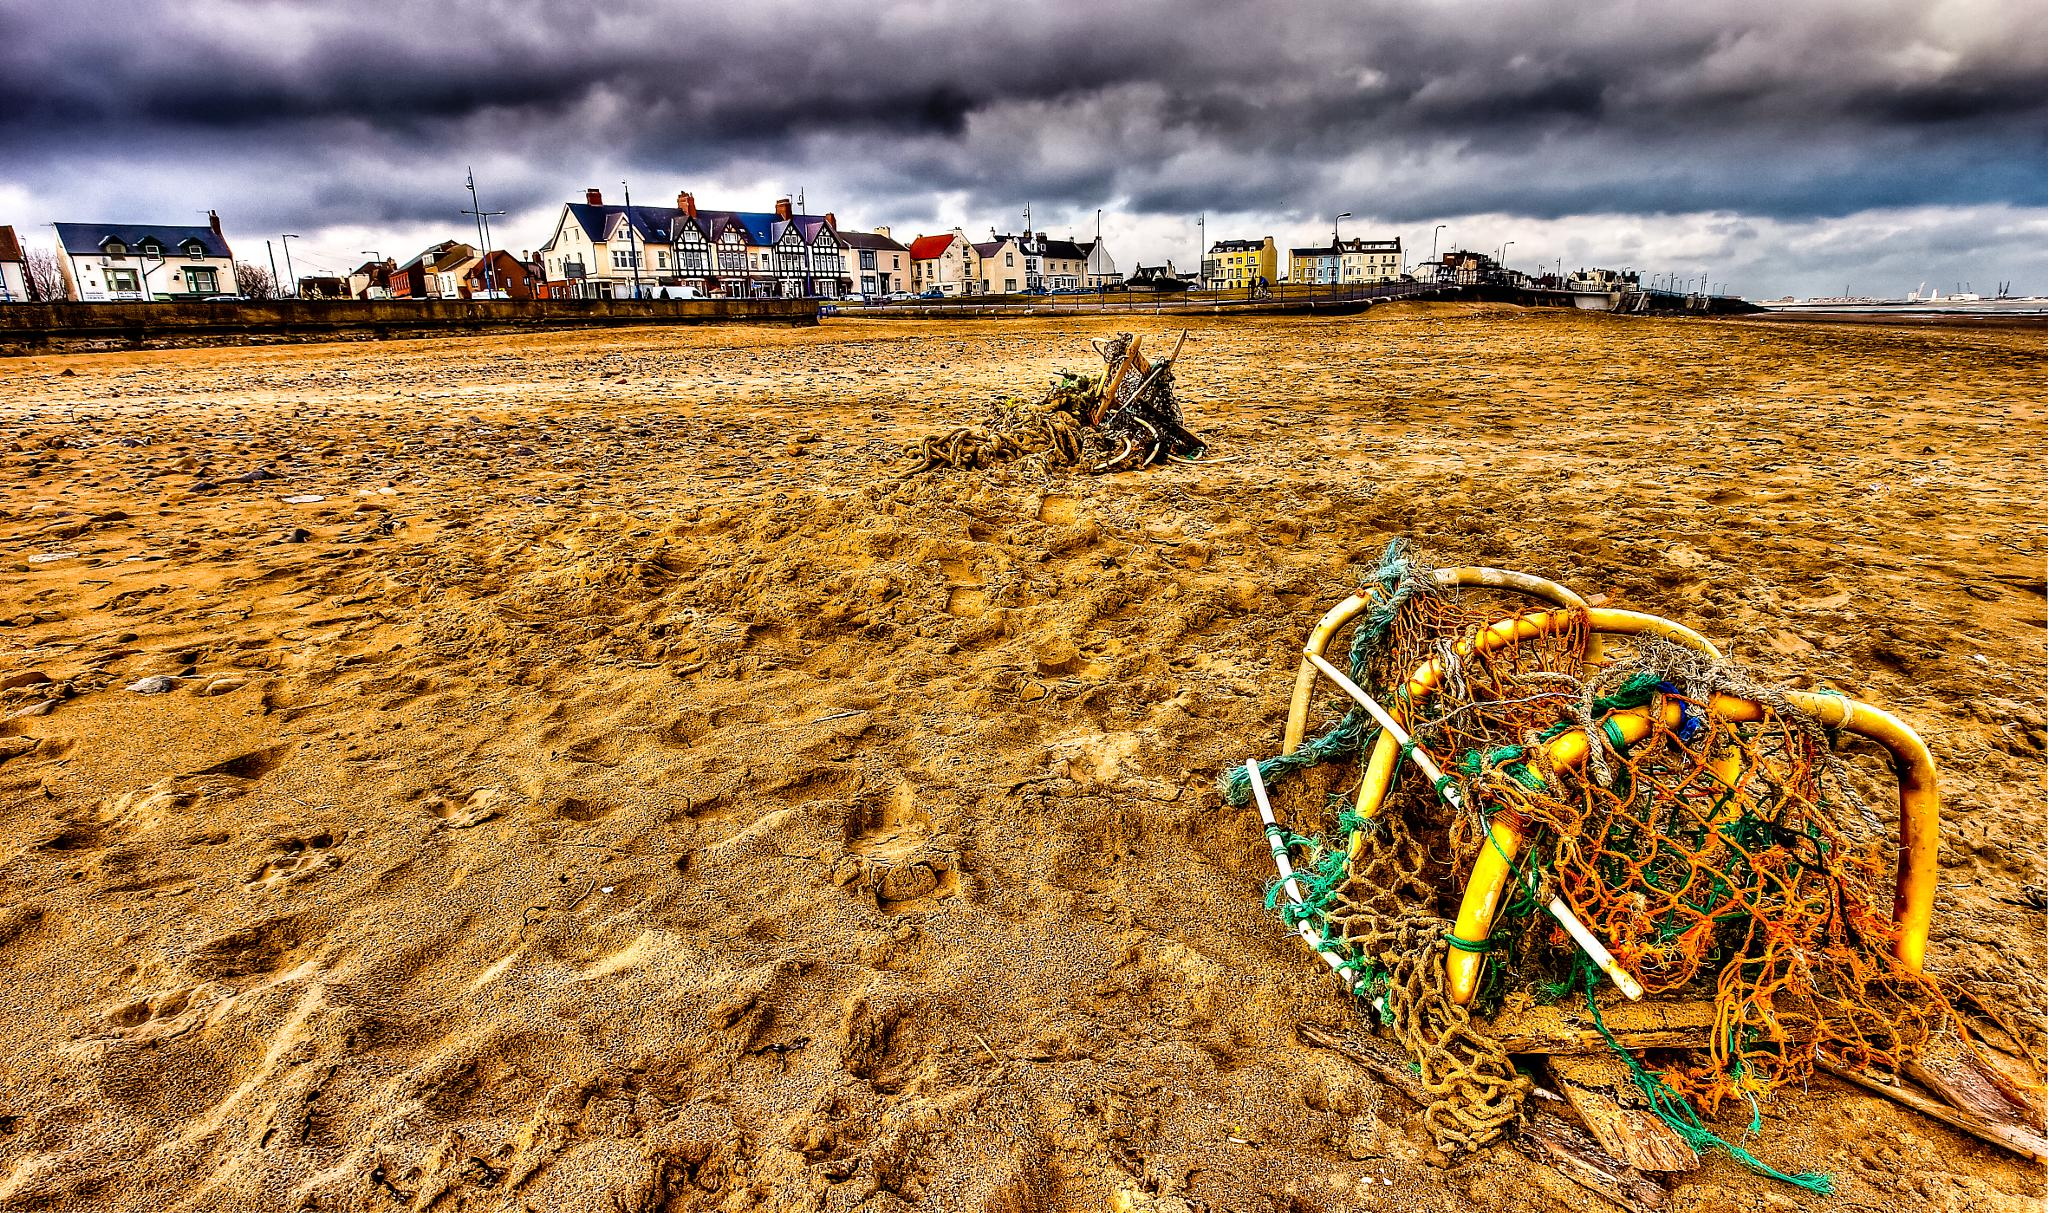 Lobster pot HDR by Peter Edwardo Vicente.